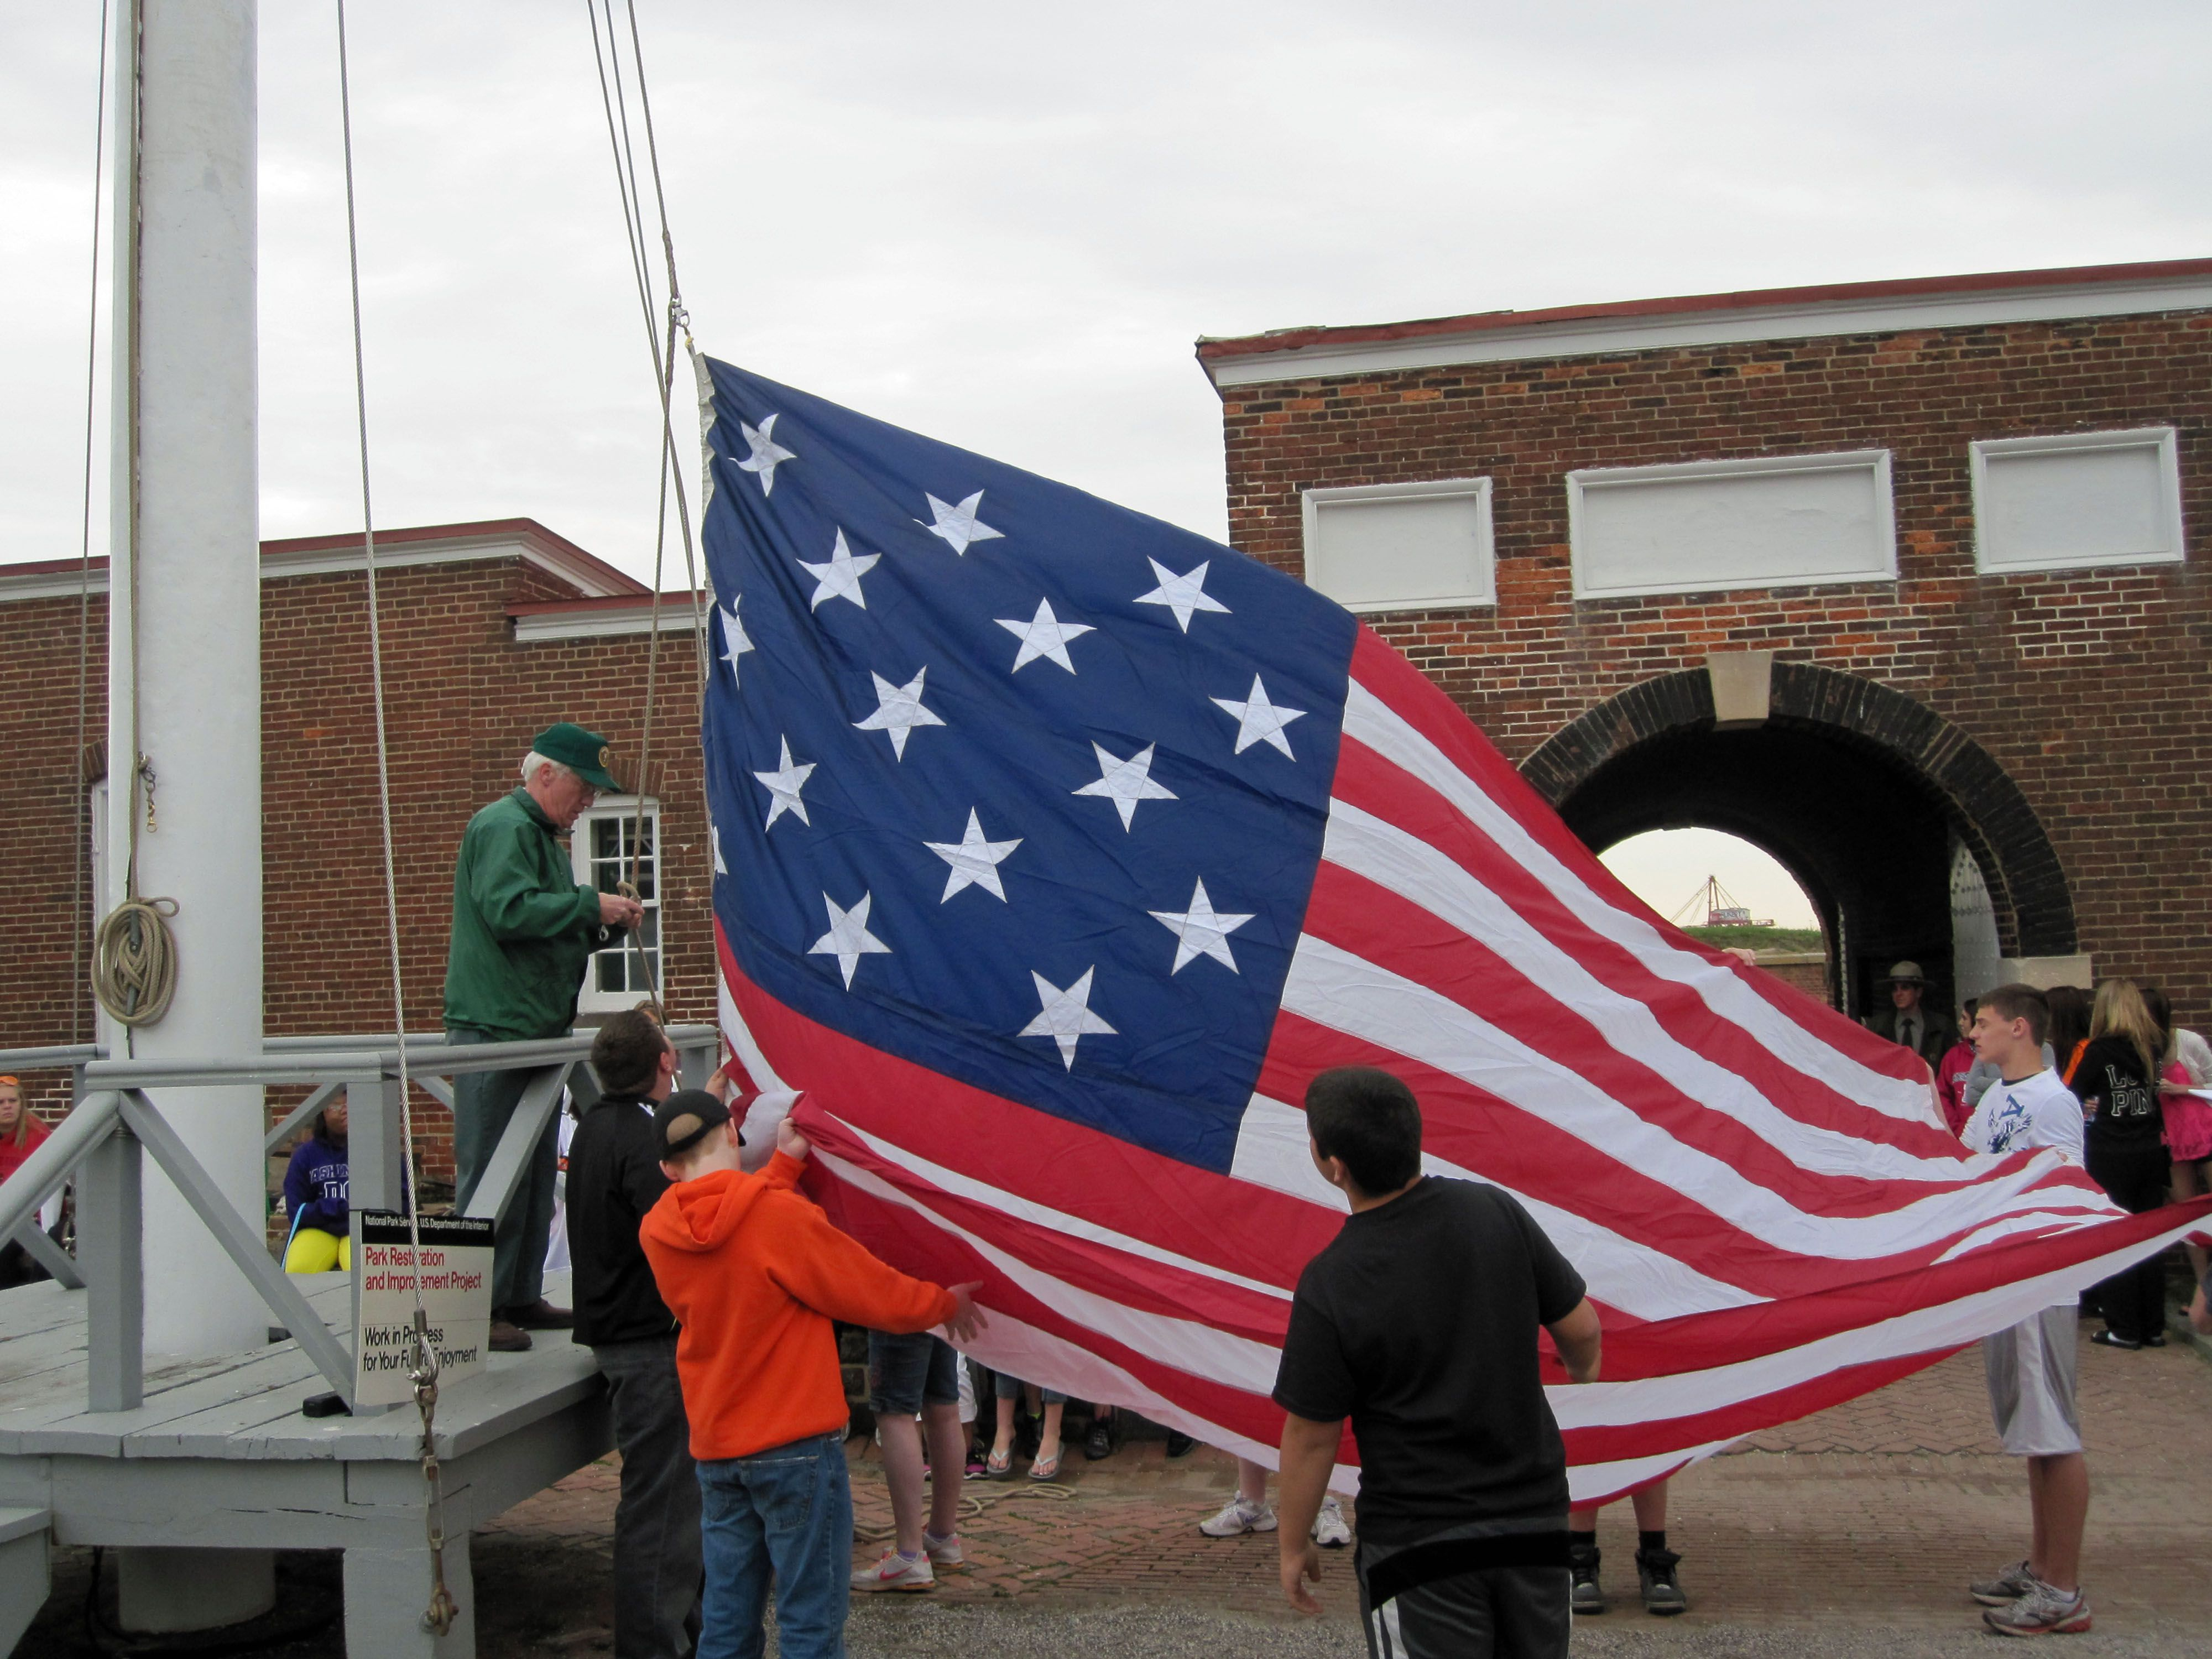 Raising the flag at Fort McHenry